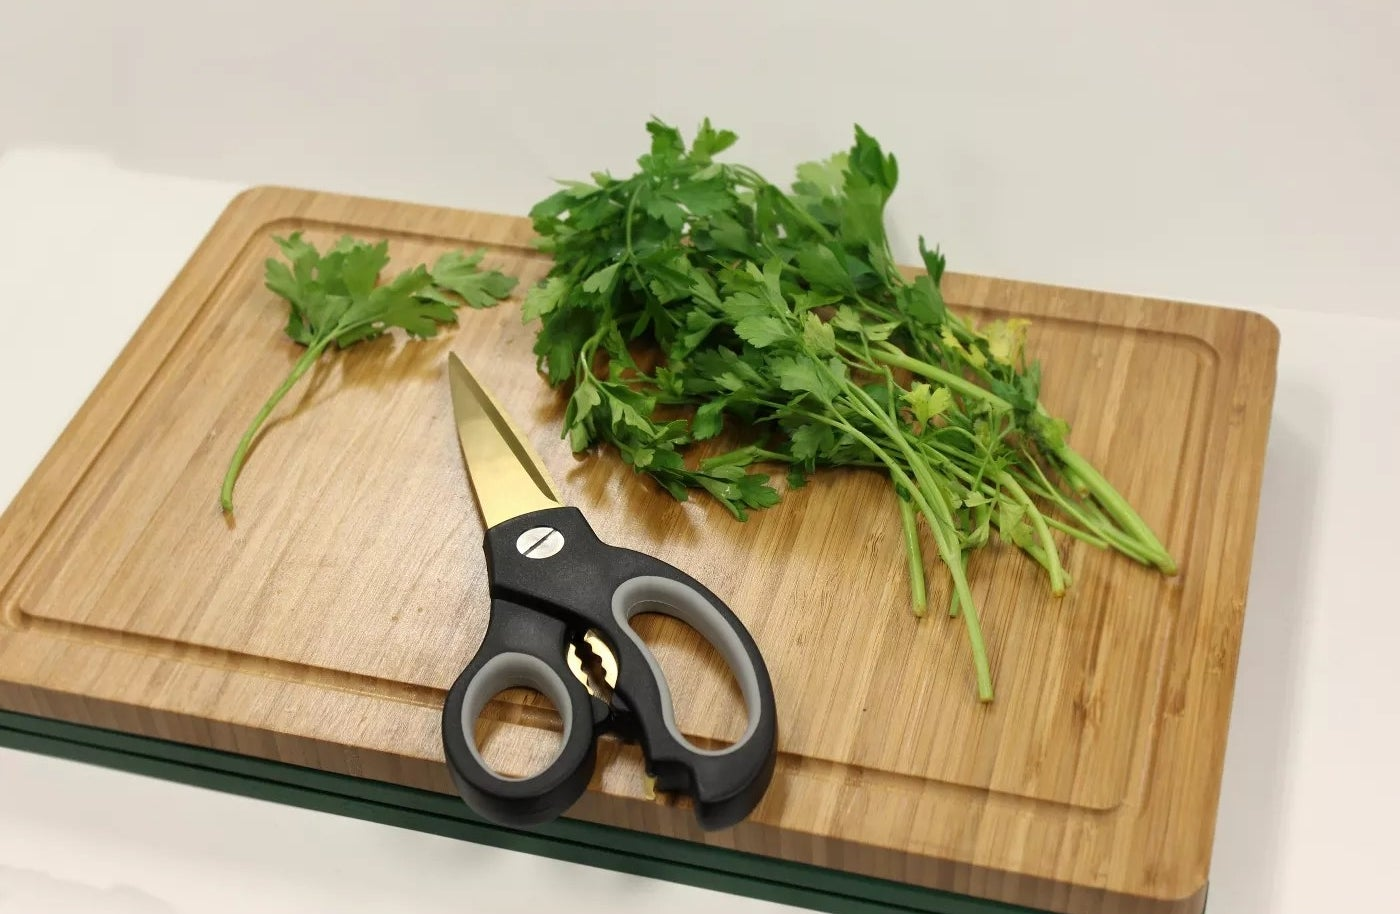 The black and gold kitchen shears